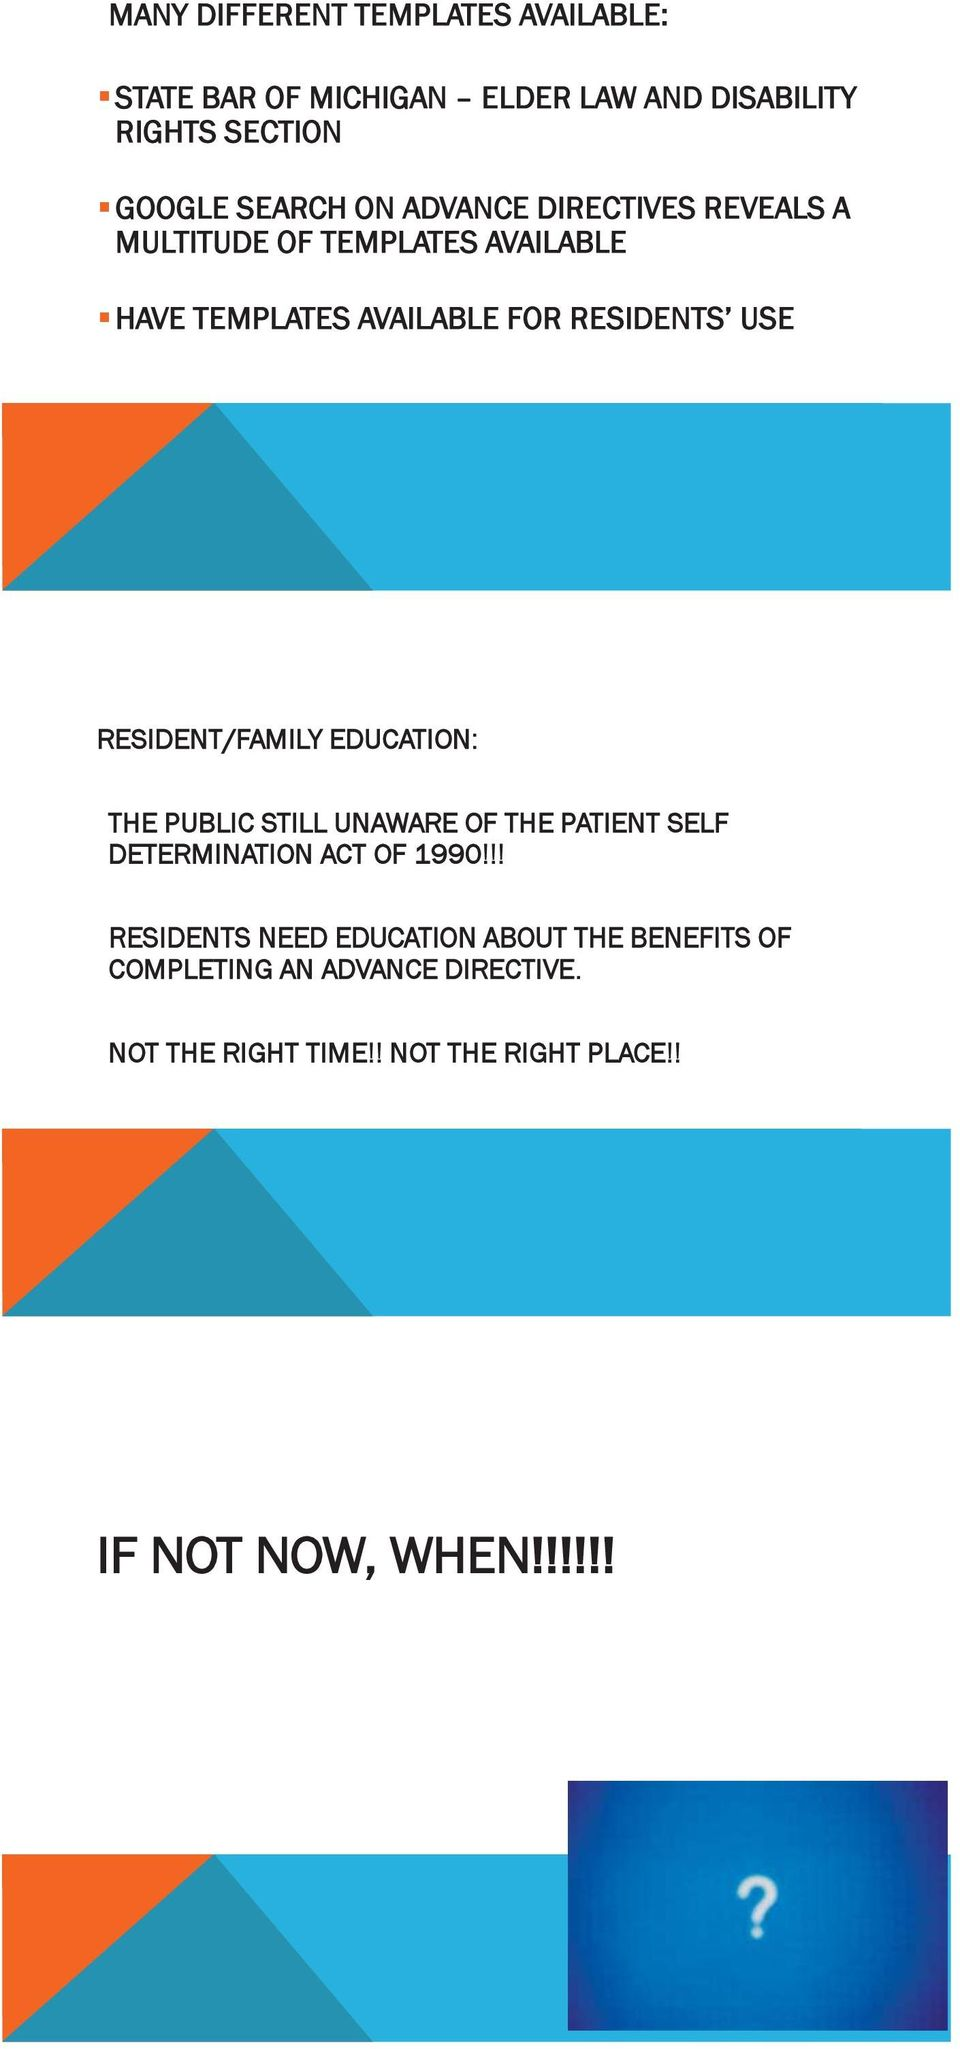 RESIDENT/FAMILY EDUCATION: THE PUBLIC STILL UNAWARE OF THE PATIENT SELF DETERMINATION ACT OF 1990!